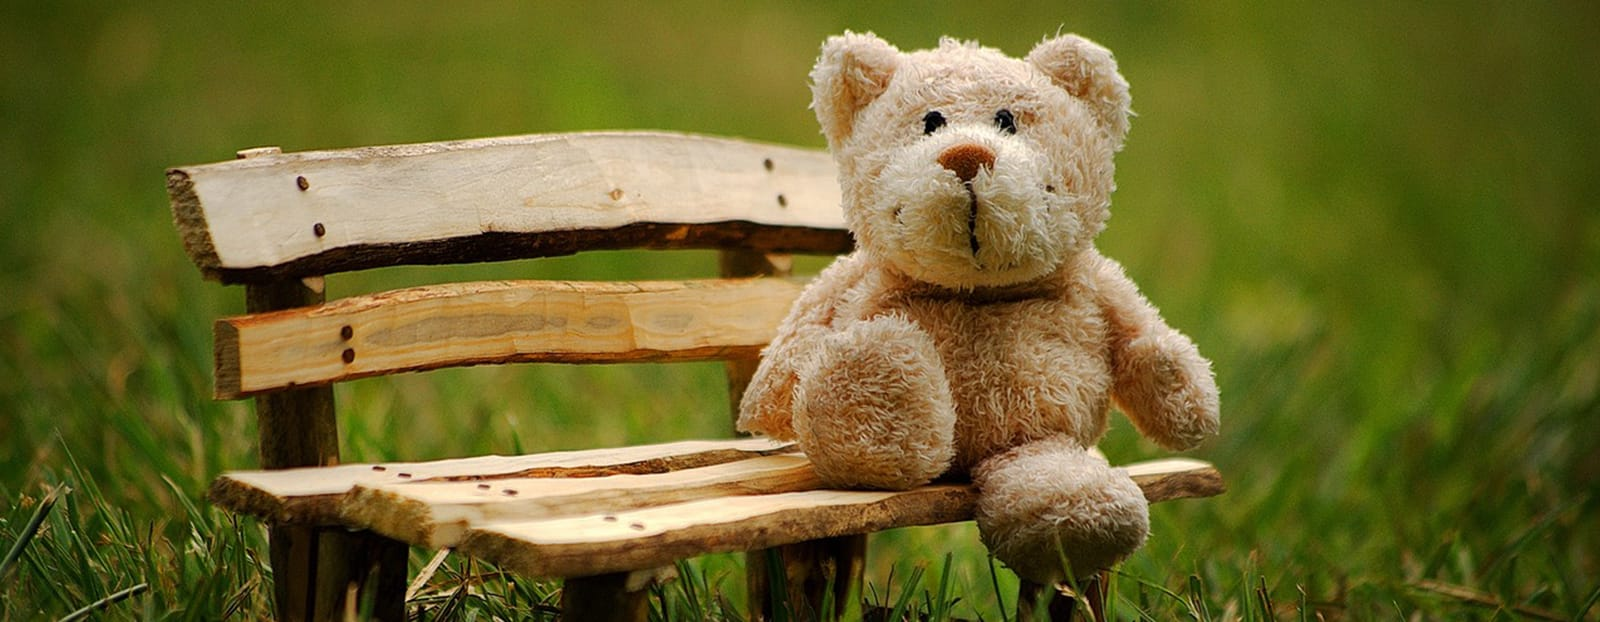 teddy bear on park bench